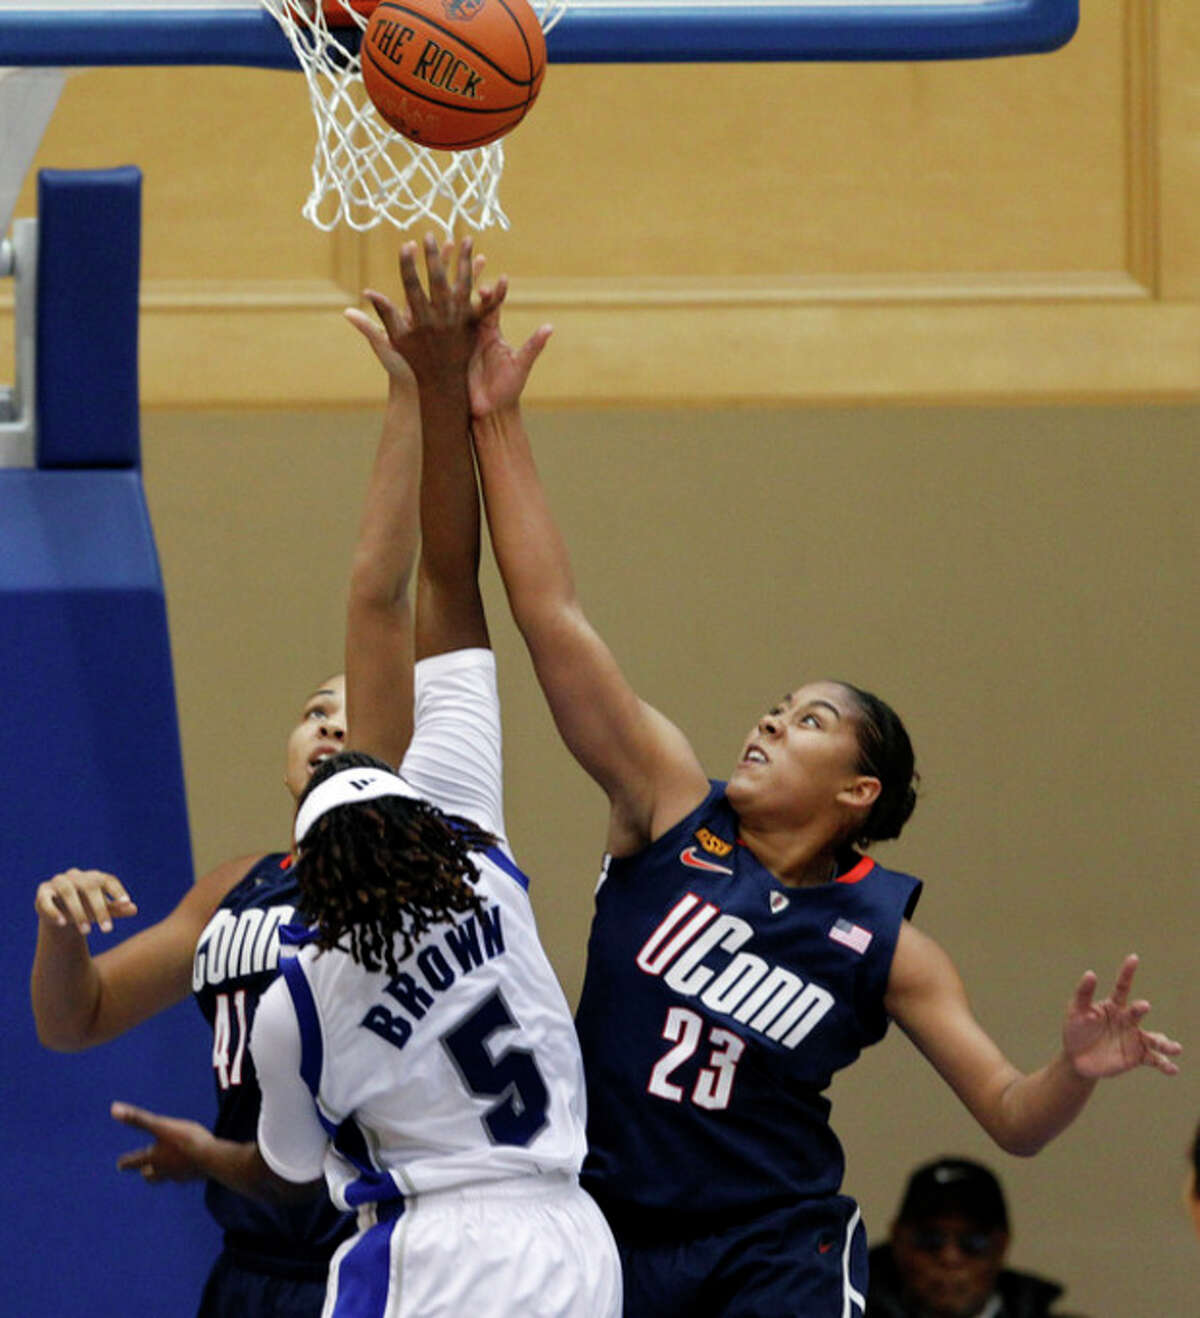 Connecticut's Kiah Stokes (41) and Kaleena Mosqueda-Lewis (23) block a shot by Seton Hall's Alexis Brown (5) during the first half of an NCAA college basketball game in South Orange, N.J., Friday, Dec. 9, 2011. (AP Photo/Mel Evans)